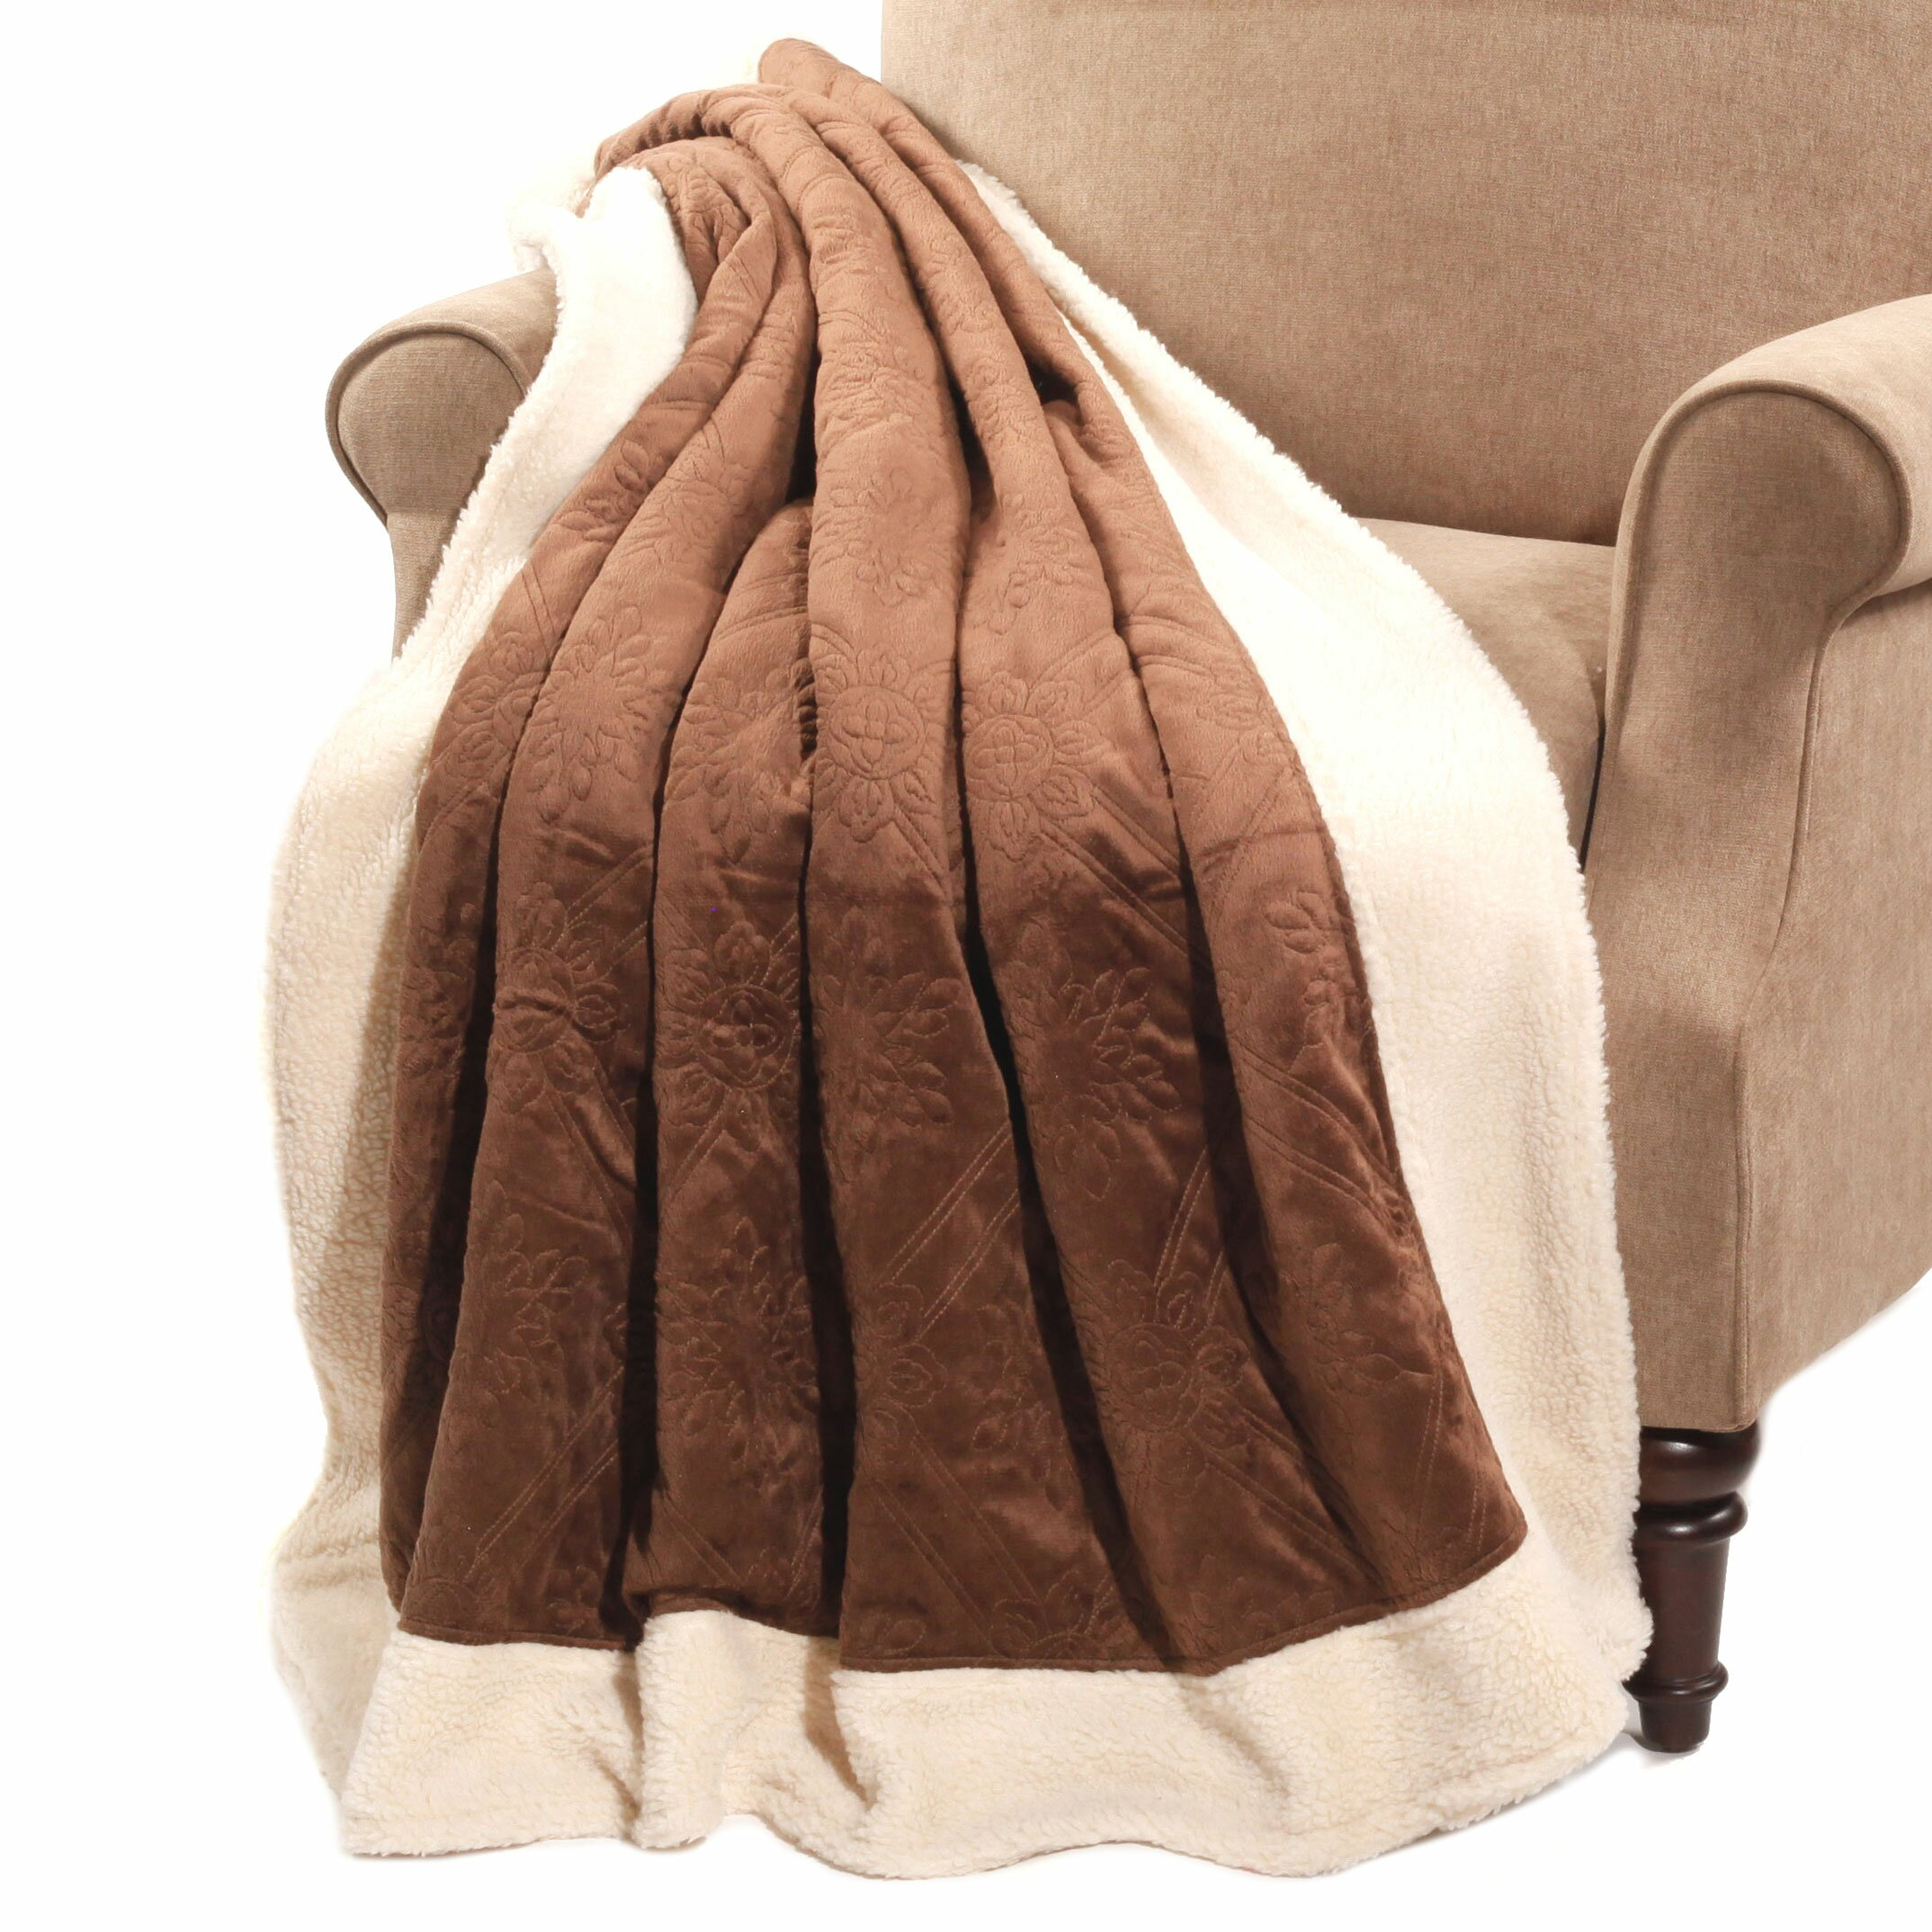 Boon throw blanket micro plush sherpa throw reviews for Sherpa blanket